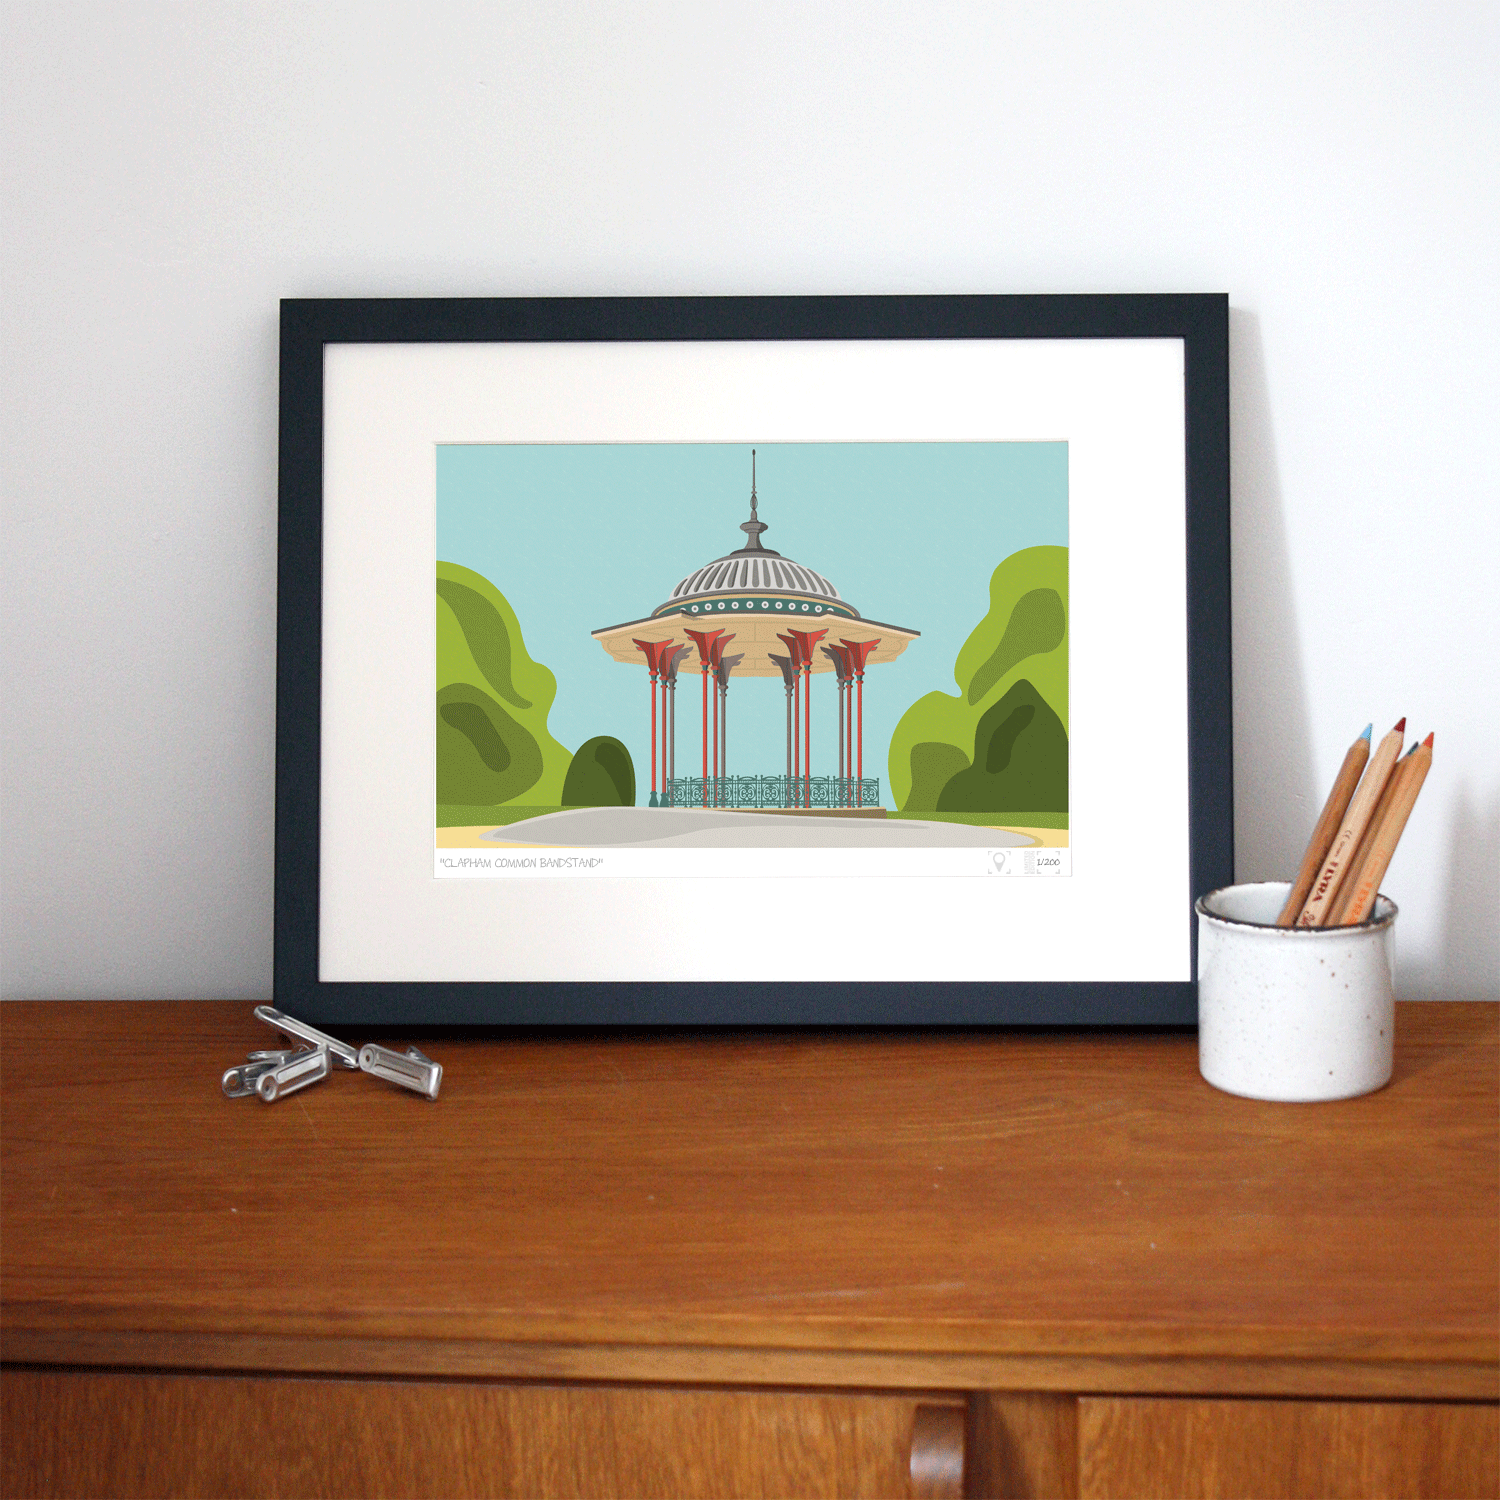 Place in Print South London Prints Clapham Common Bandstand Art Print Lifestyle